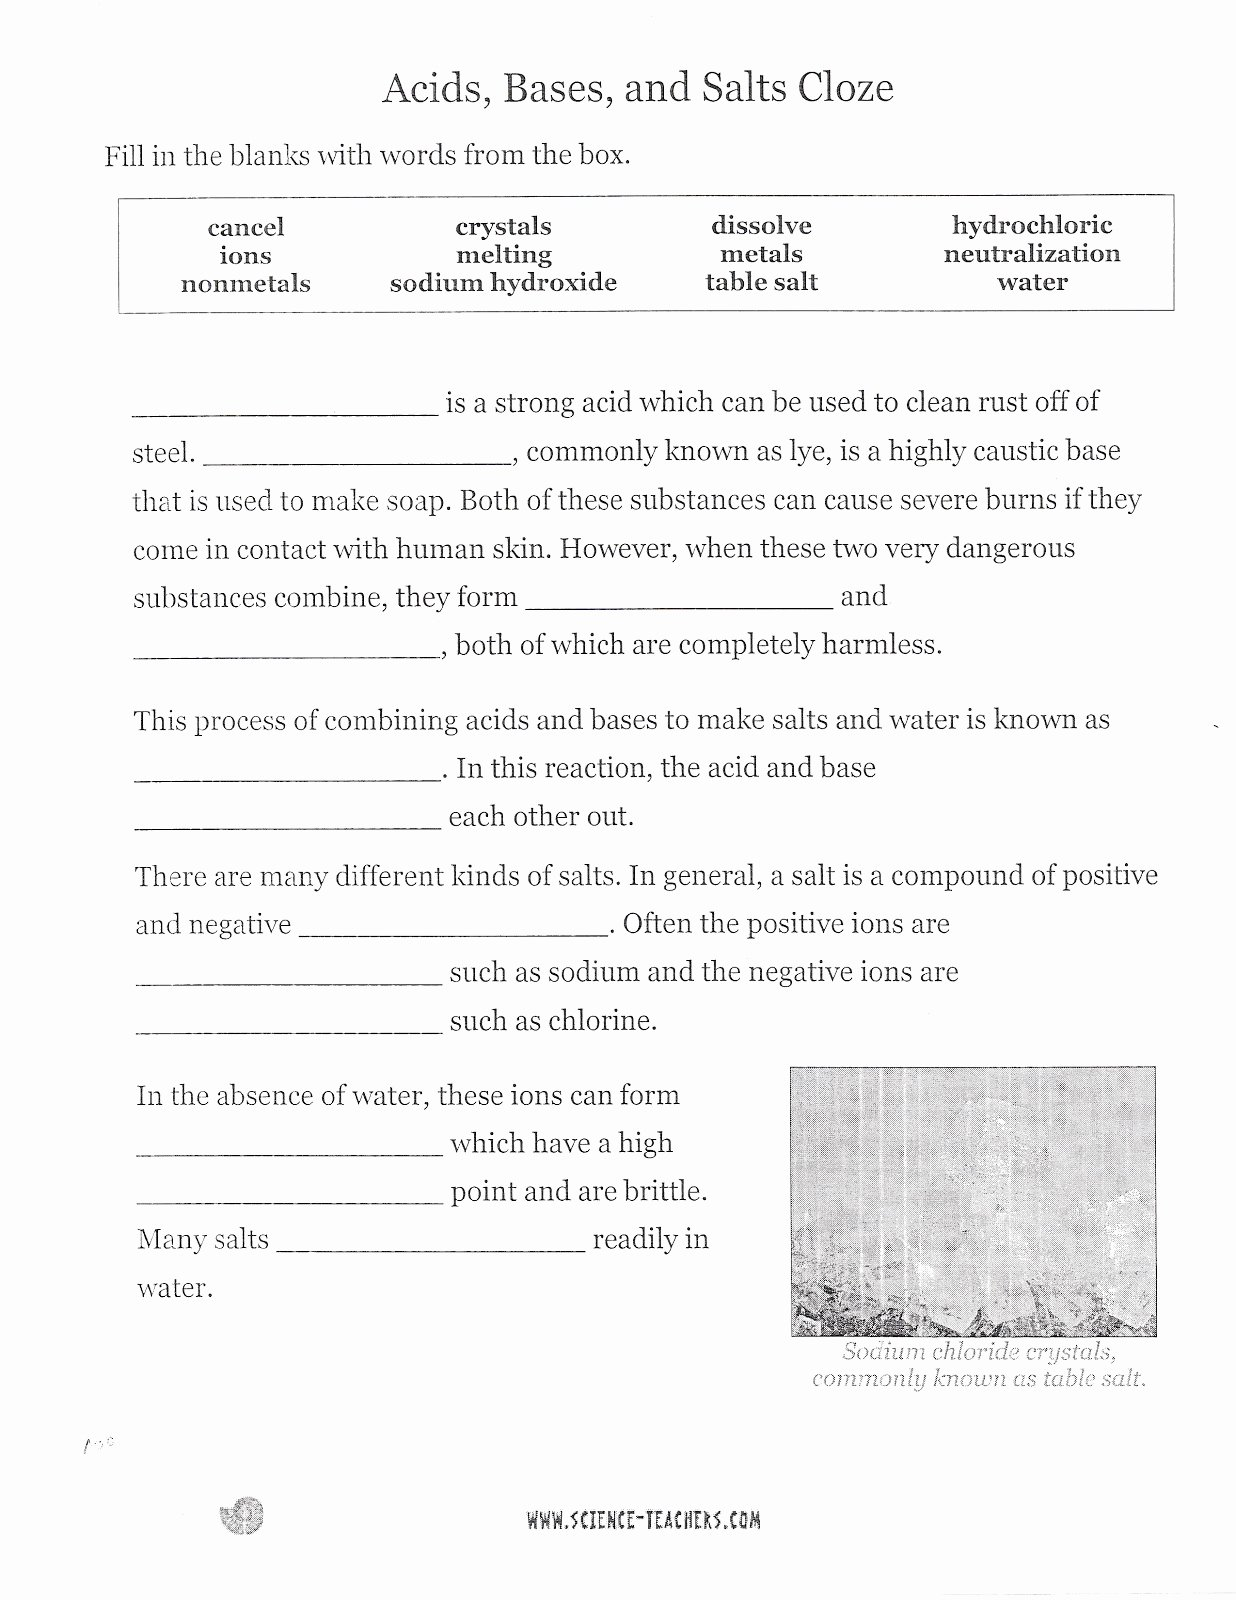 Acid and Base Worksheet Answers Beautiful Dr Gayden S Eighth Grade Science Class November 2012